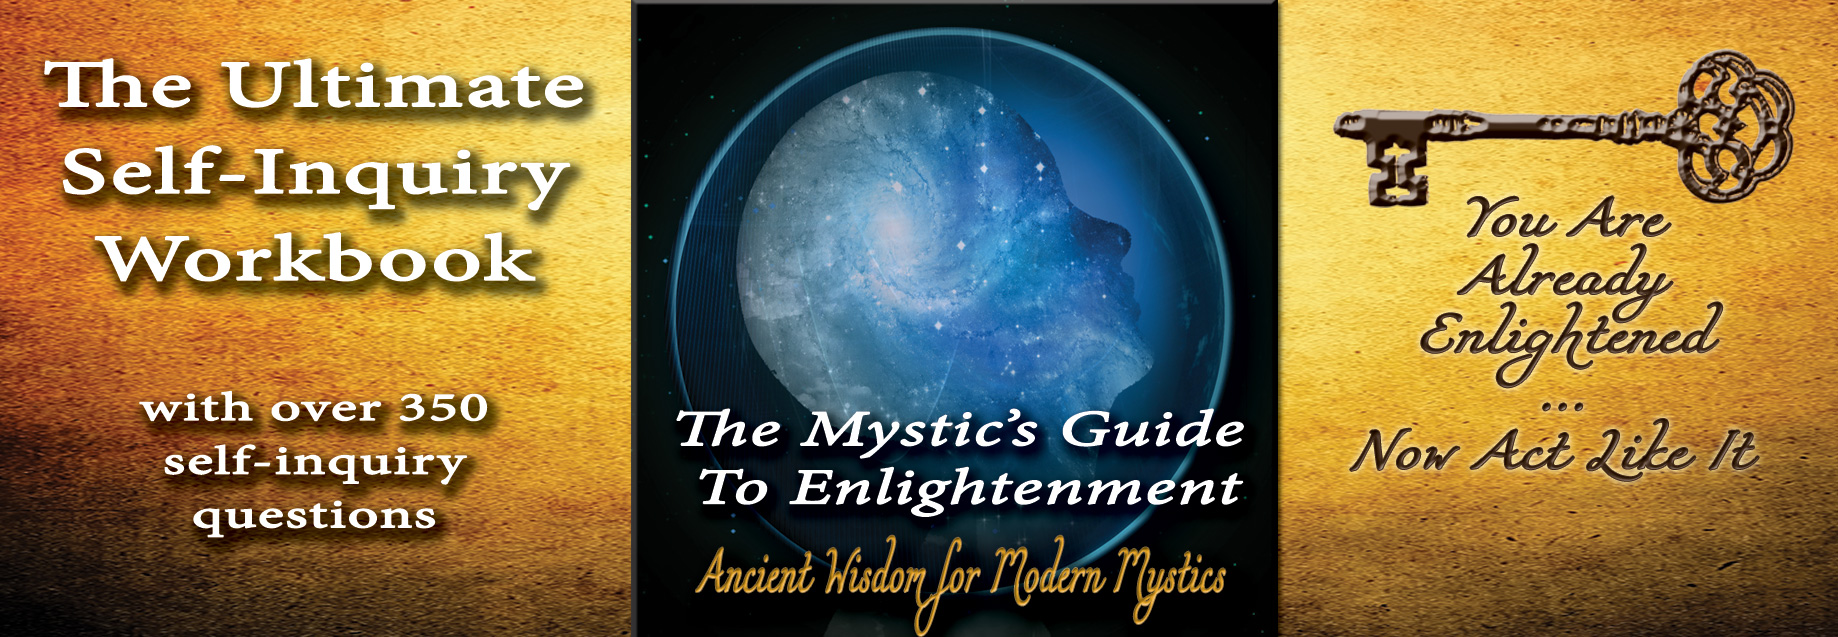 Go Deeper Into Truth with The Mystic's Guide To Enlightenment